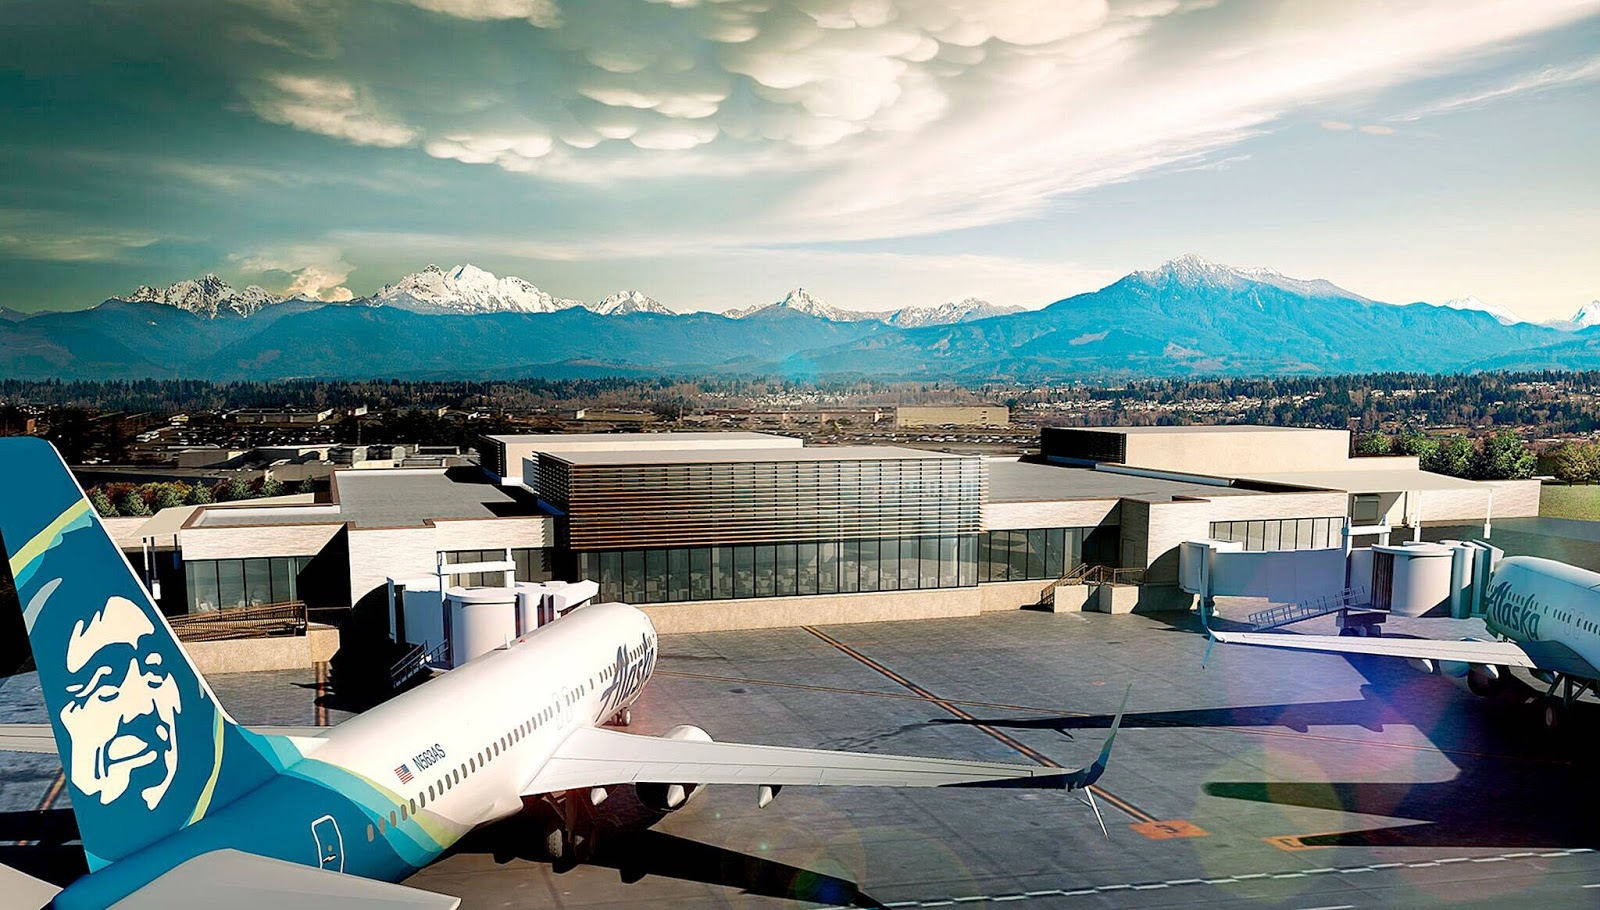 Alaska Airlines unveils 13 daily departures to 8 destinations from ...